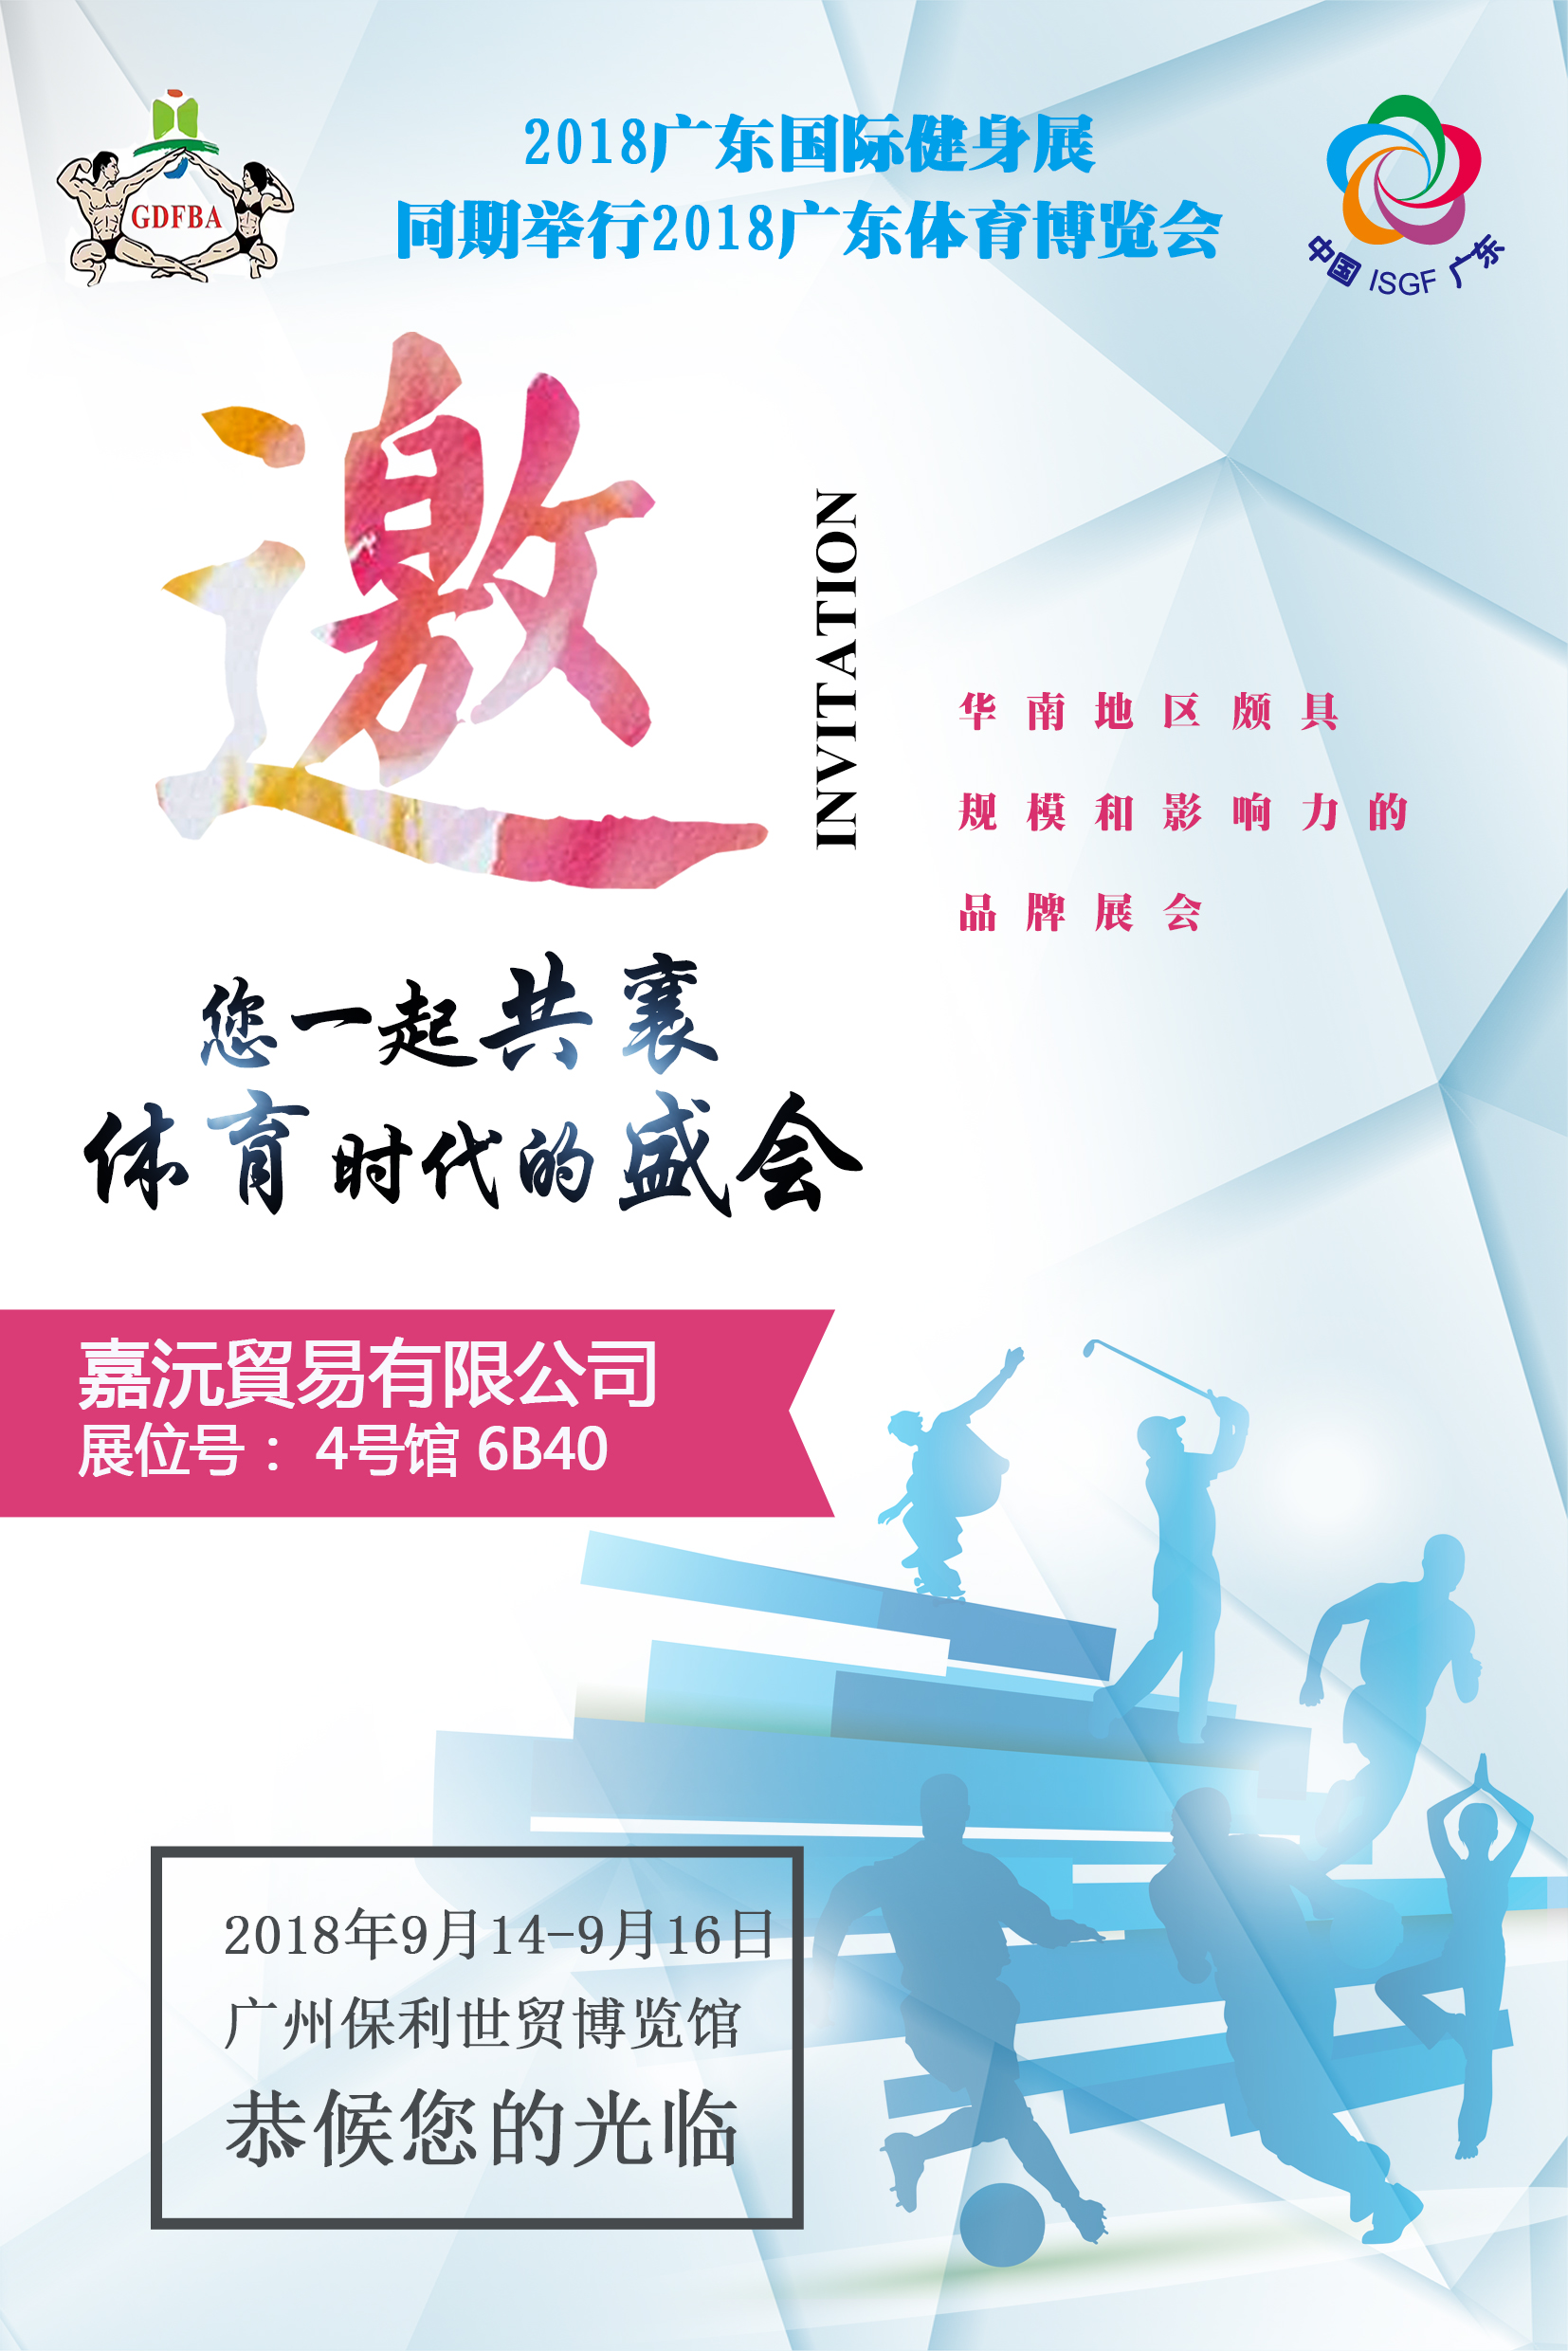 2018 Guangdong Sport Show【Invitation】